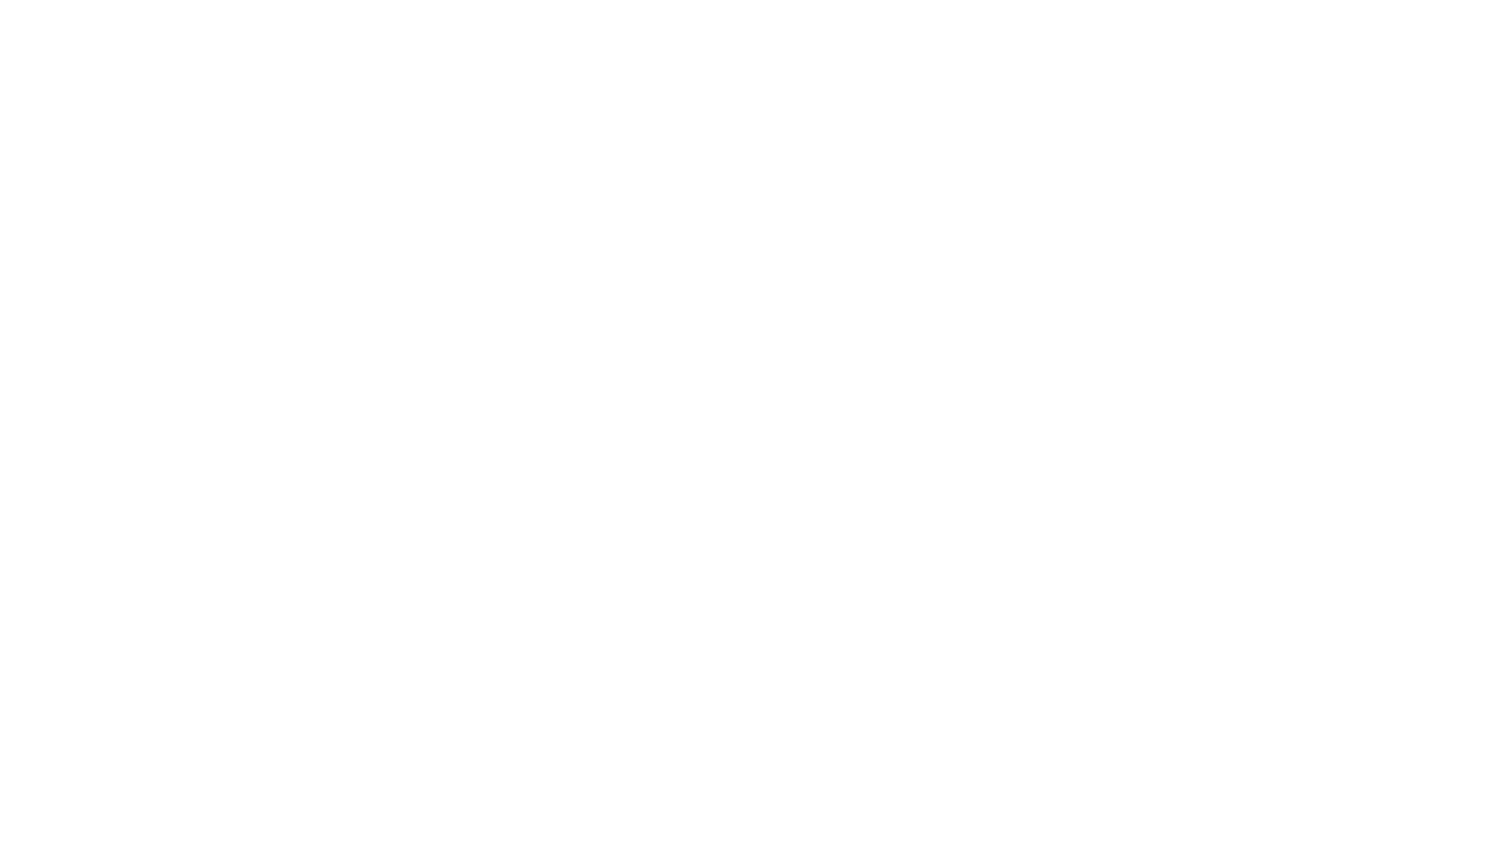 Great Good Fine Ok